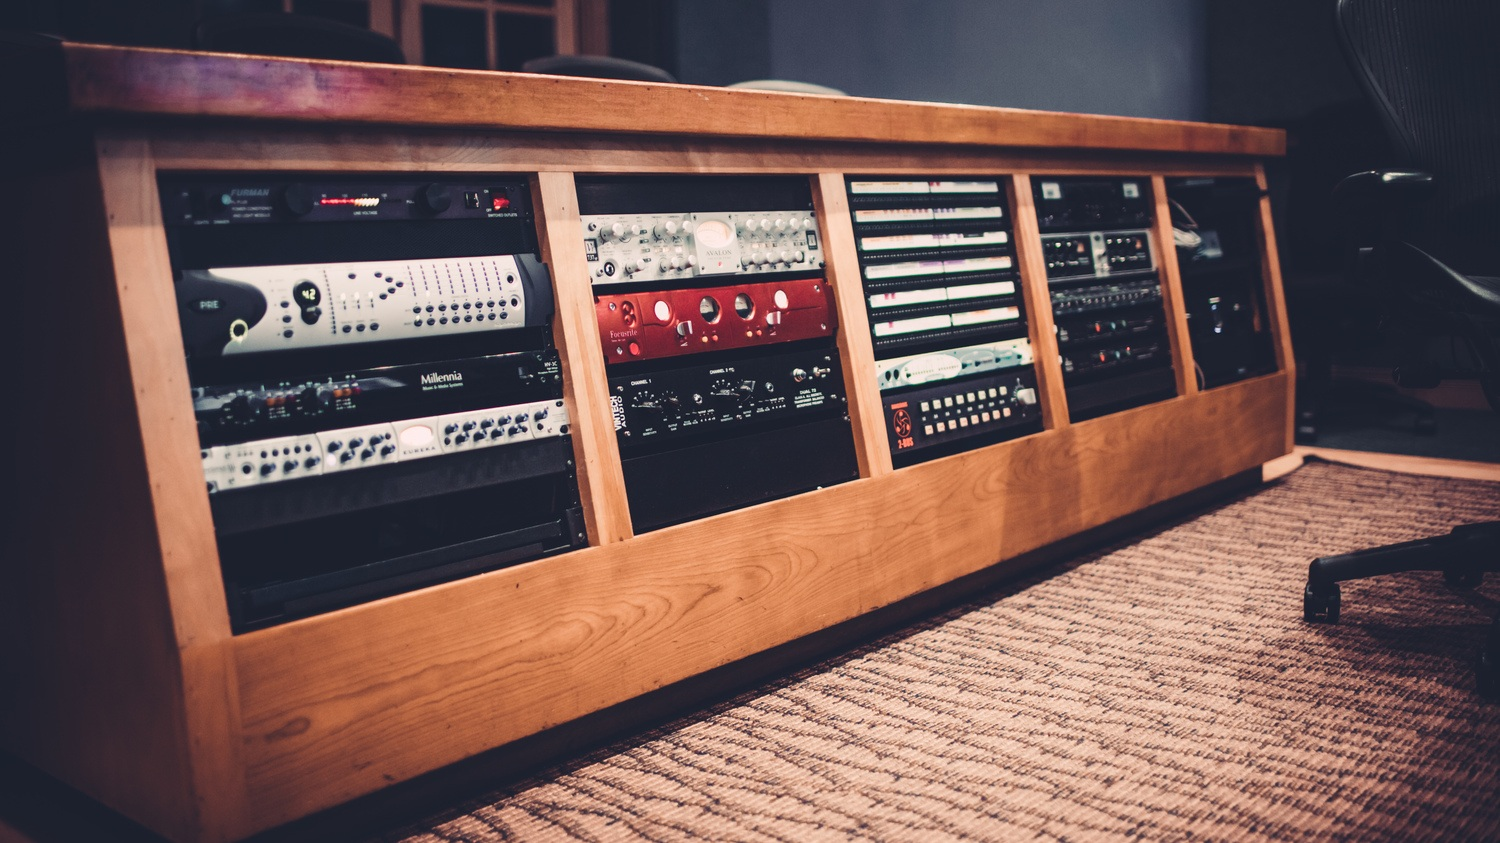 Produce In World-Class Studios - Pyramind's facilities include multiple production suites and multi-workstation labs, all equipped with the latest gear. You'll be working with industry-standard software in great-sounding rooms so you'll really know how well your latest mix will translate to the club. There's no experience like hearing your music through expertly tuned monitors in a professional studio!